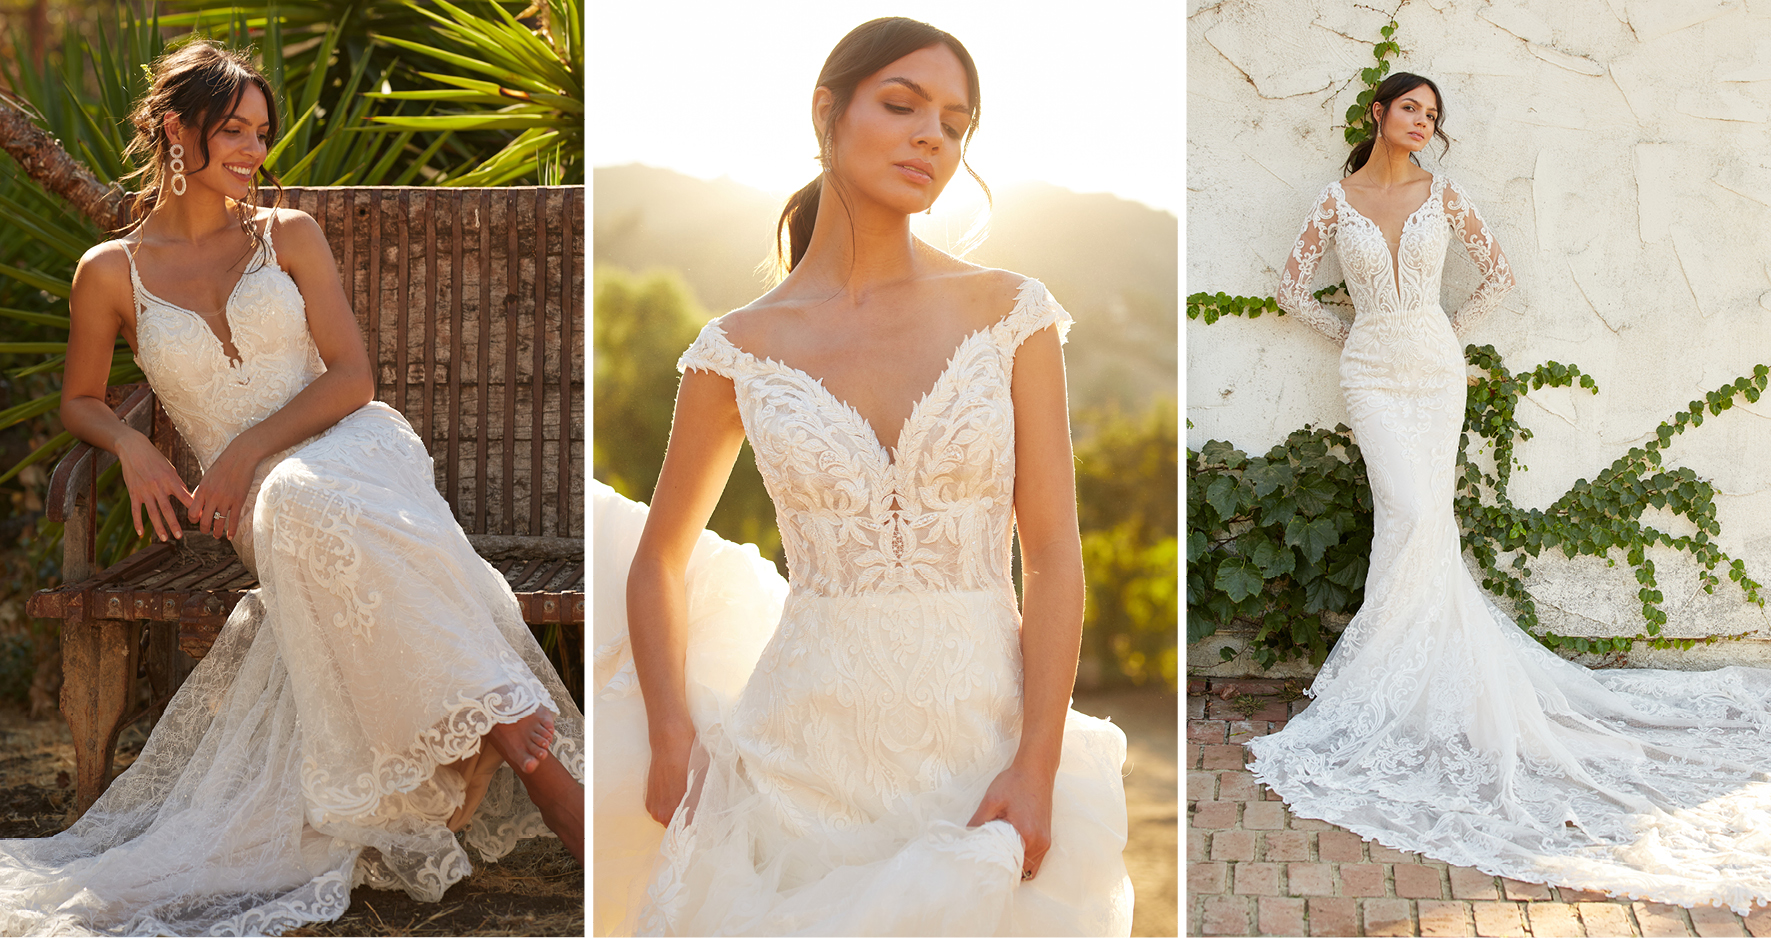 Spanish-Inspired Wedding Blog Post by Maggie Sottero